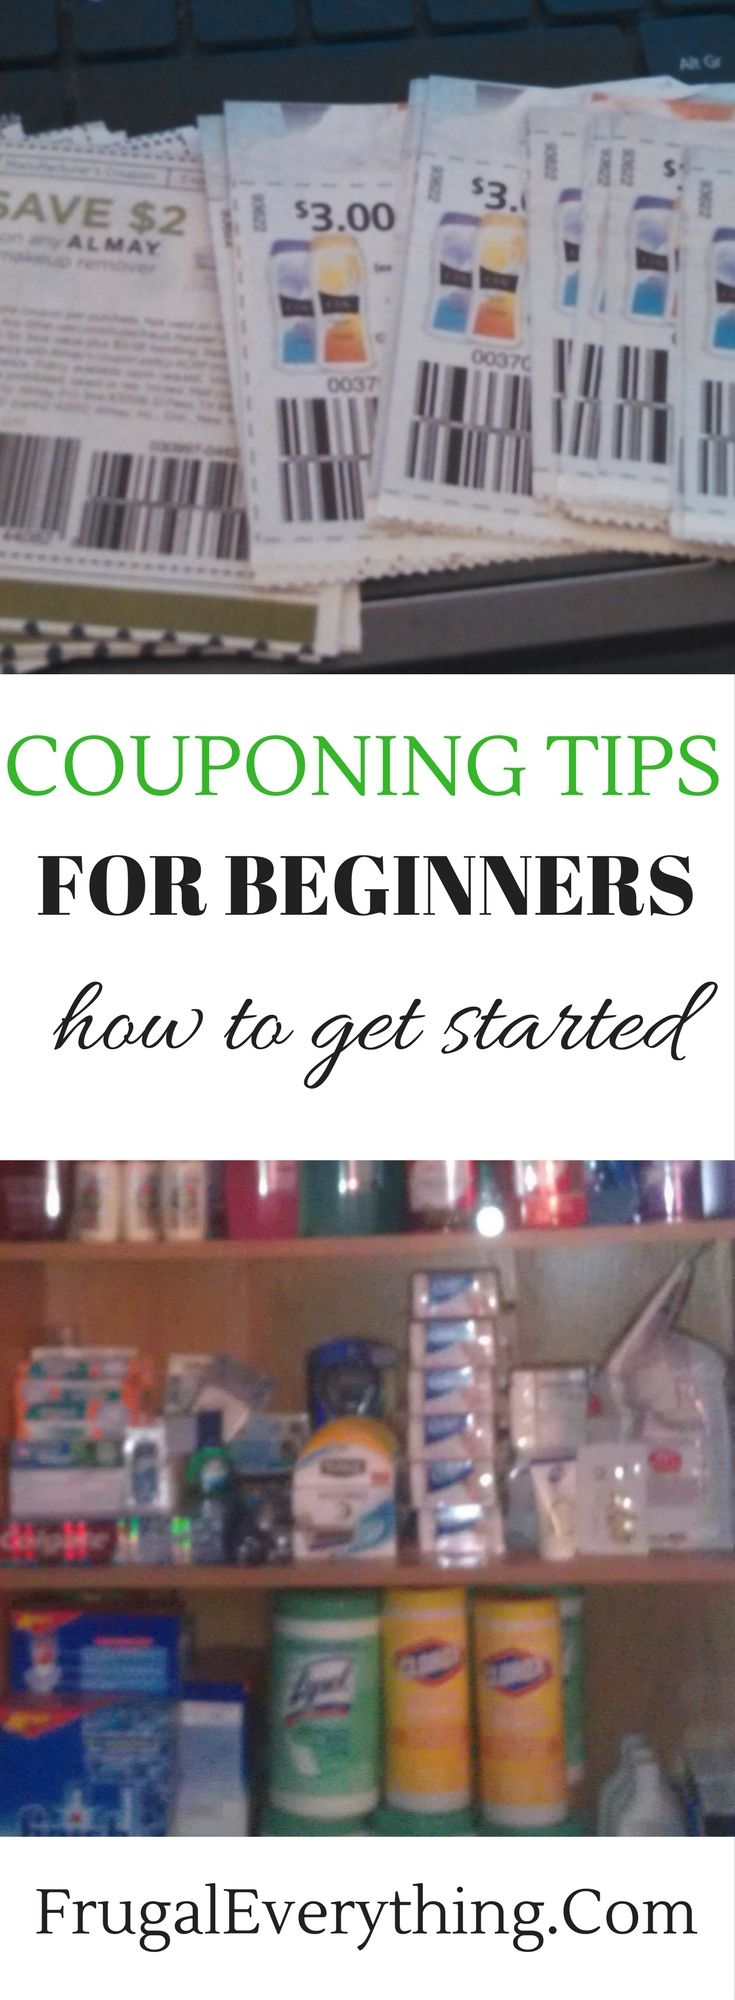 Couponing can be a great way to save money. Follow these couponing tips for beginners to get started fast and easy!